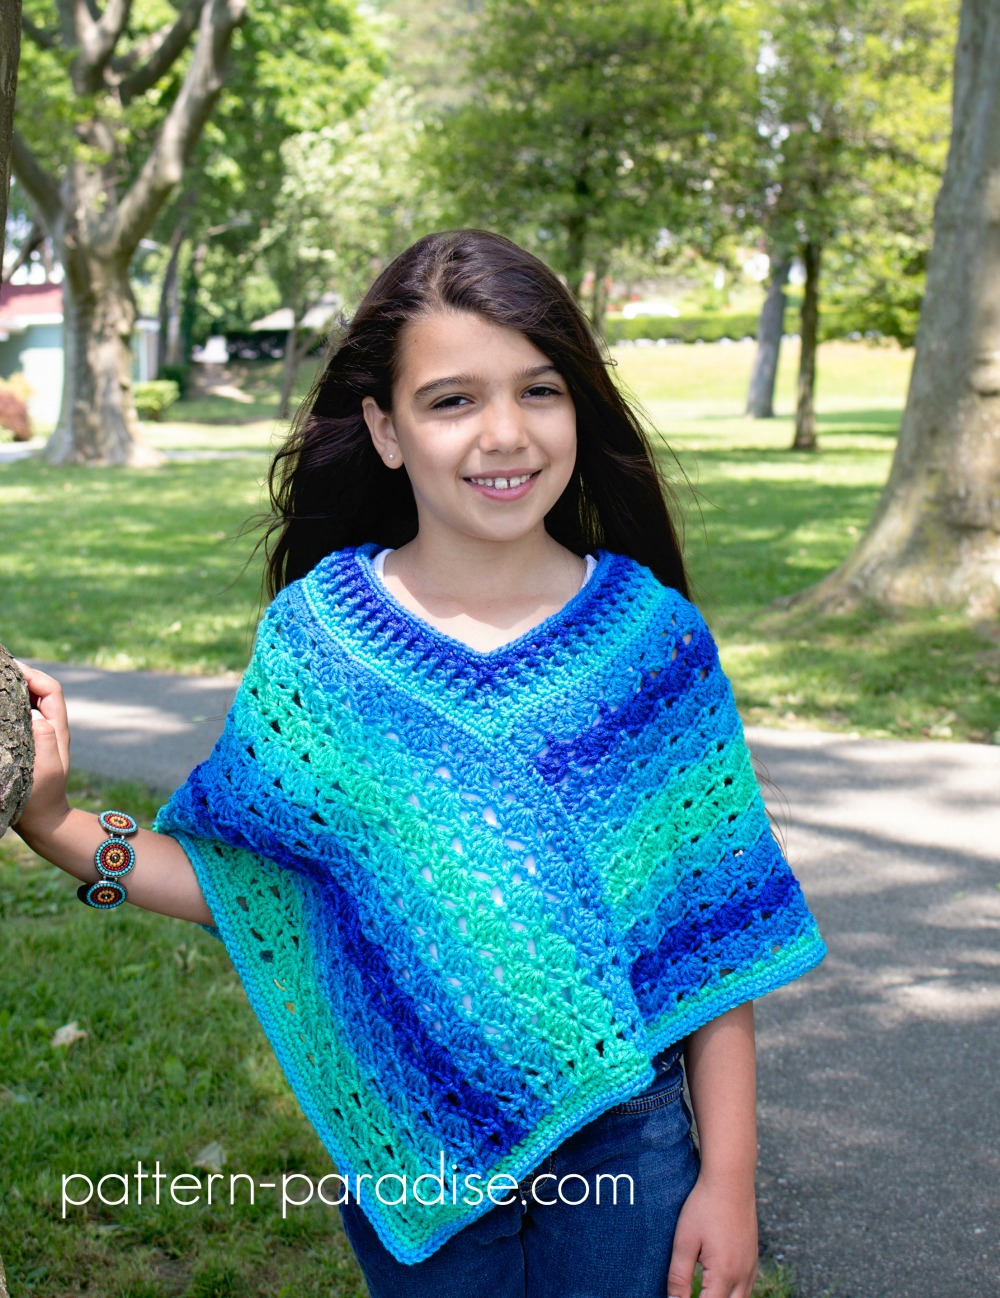 Free Crochet Patterns For Toddlers Skirts | Saddha